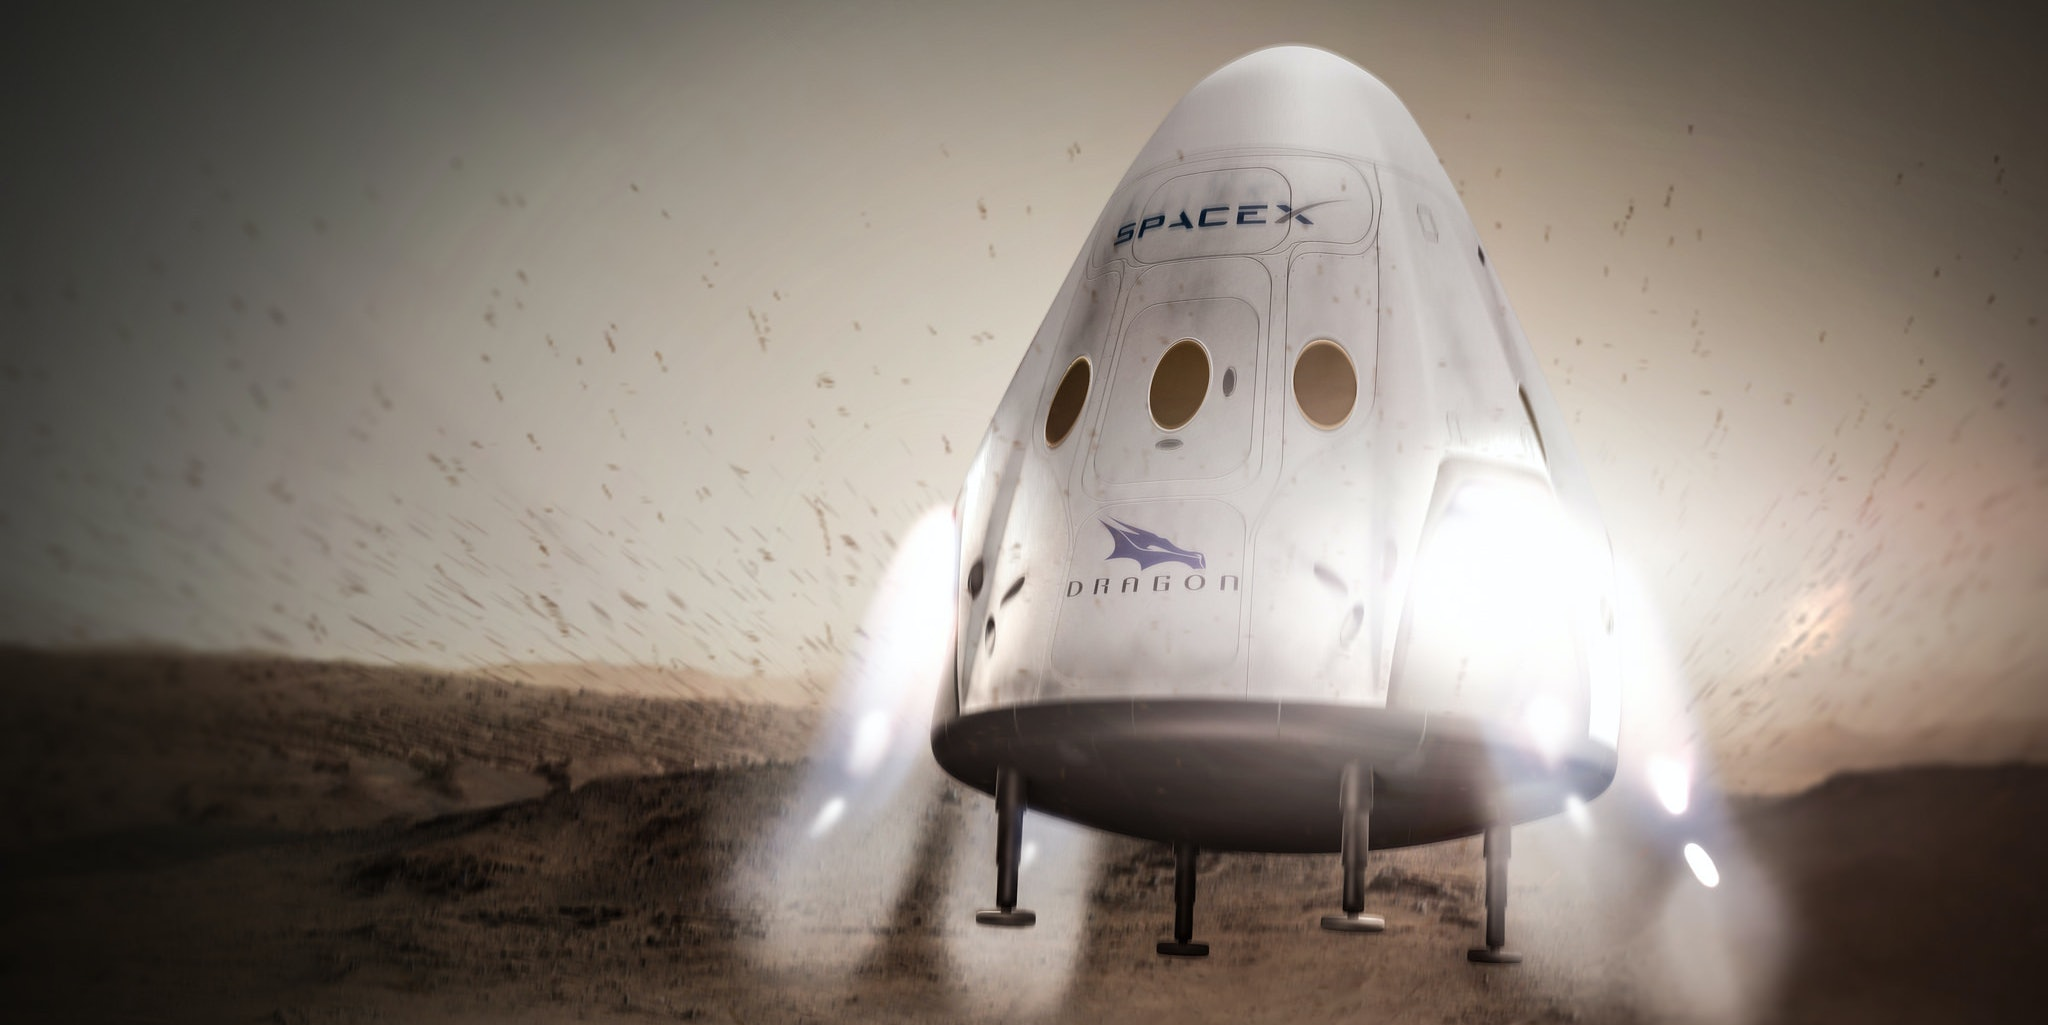 SpaceX Won't Haul Around NASA Gear During First Mars Mission